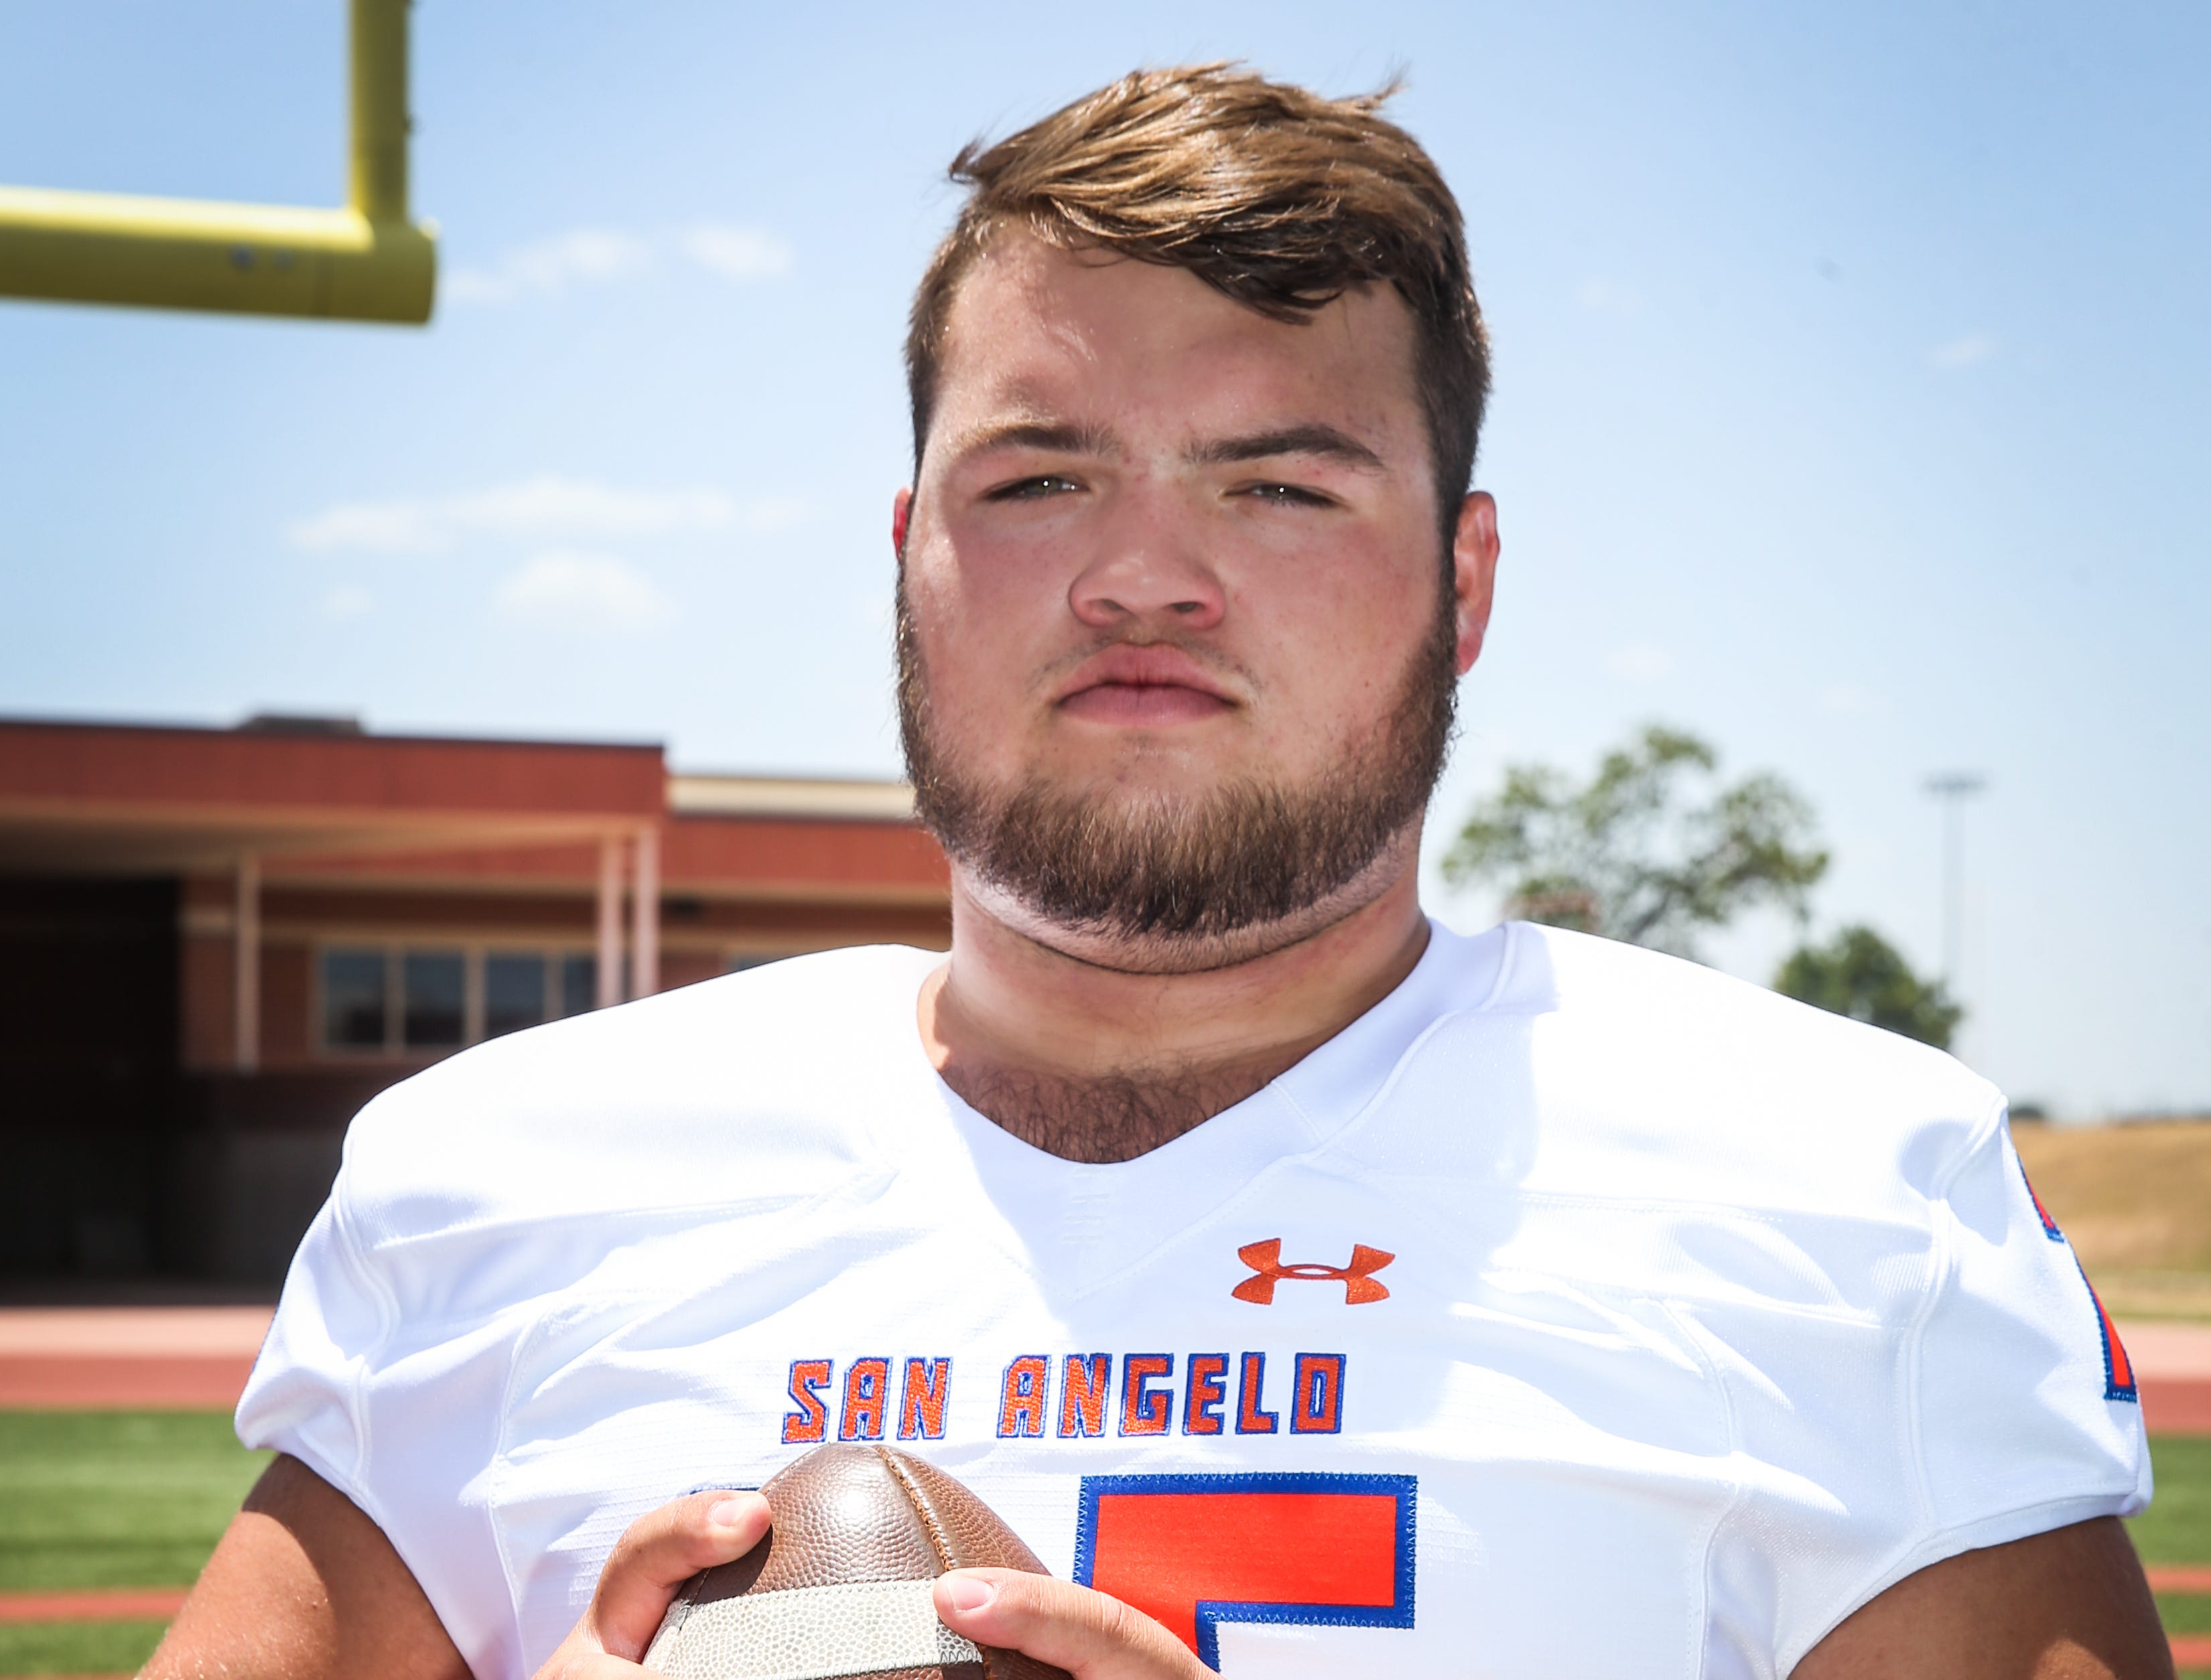 Gunner Couch, Central, Offensive lineman, 6-2, 295, Sr.  Scouting report: Couch has been a starter for the Bobcats since his freshman year. He didn't allow a sack last season and graded out at 94 percent. He earned honorable mention on the Class 6A all-state team.